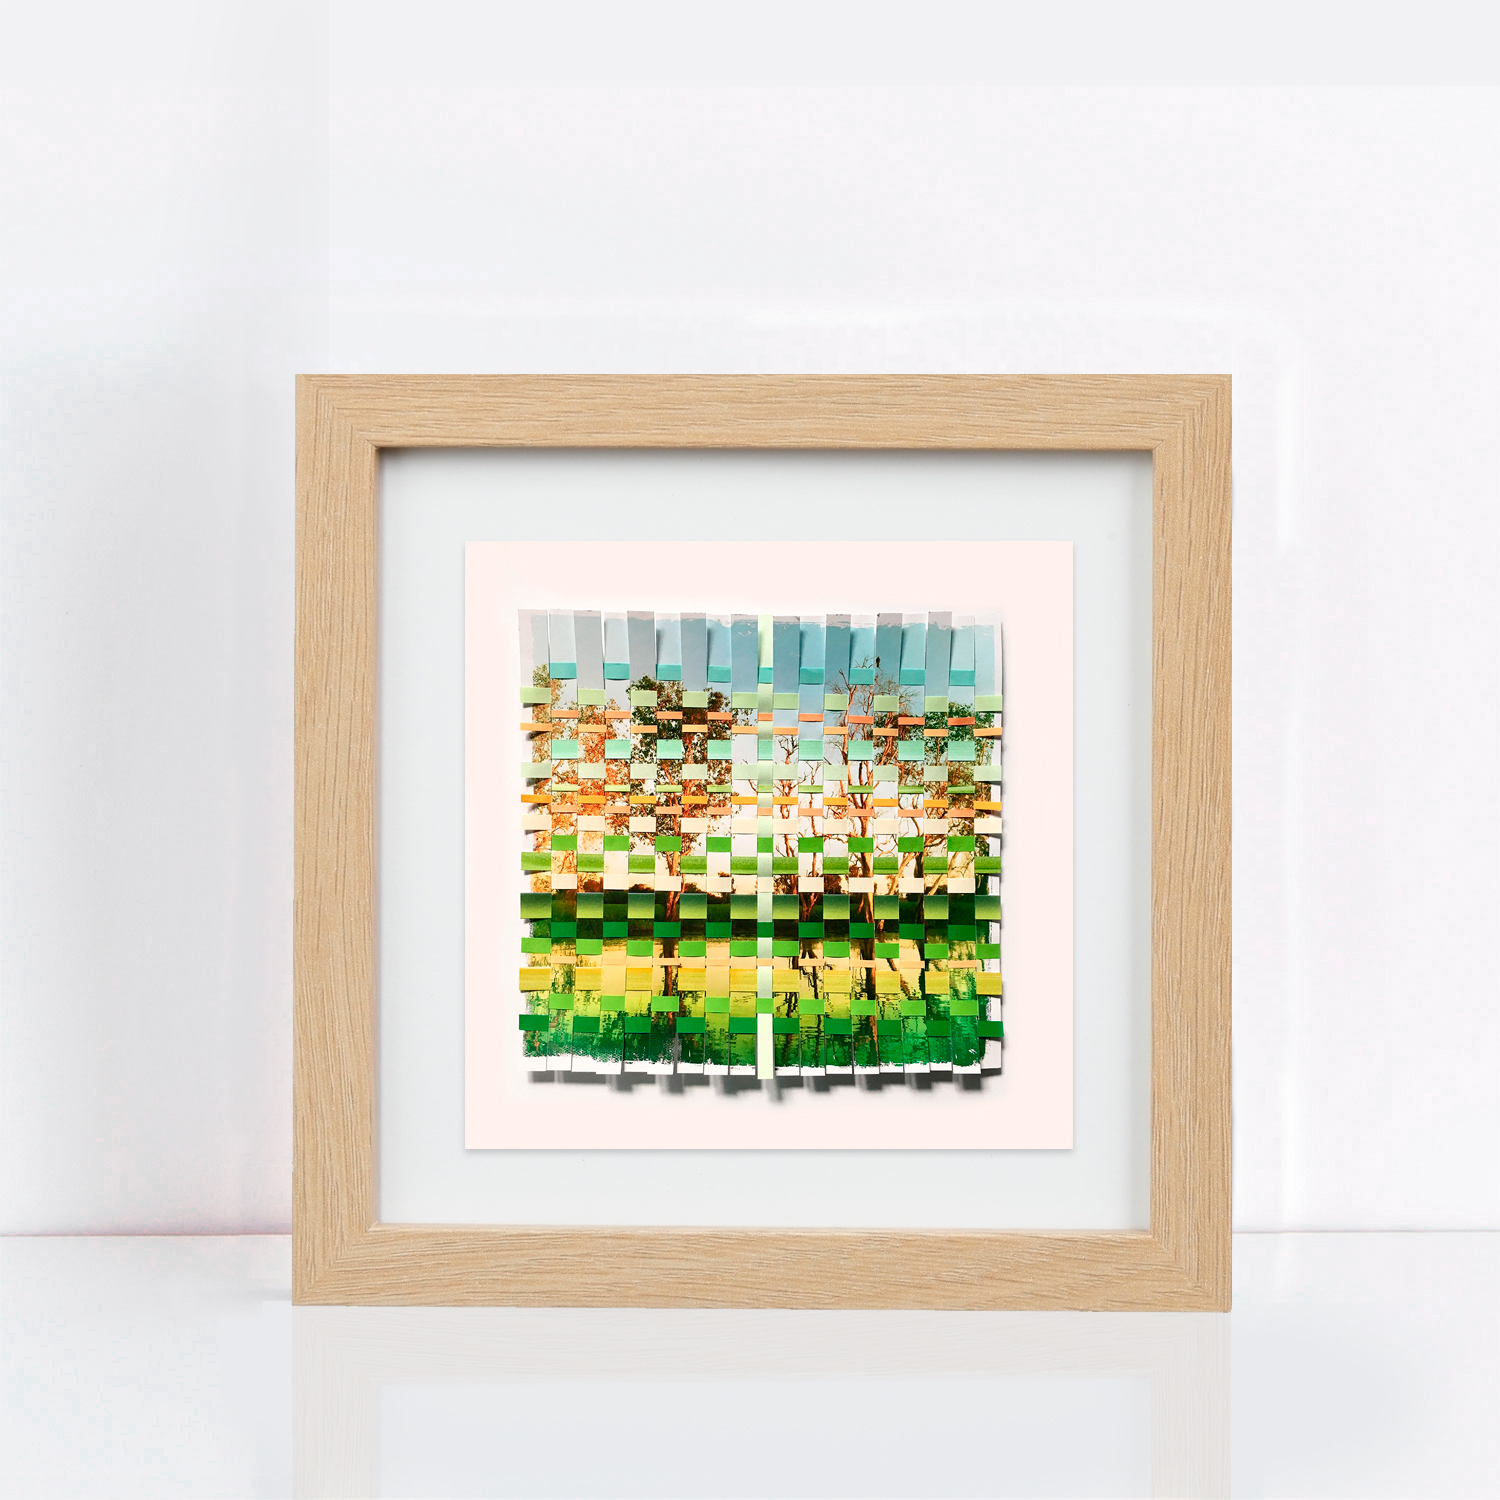 fineart-green-and-gold-framed